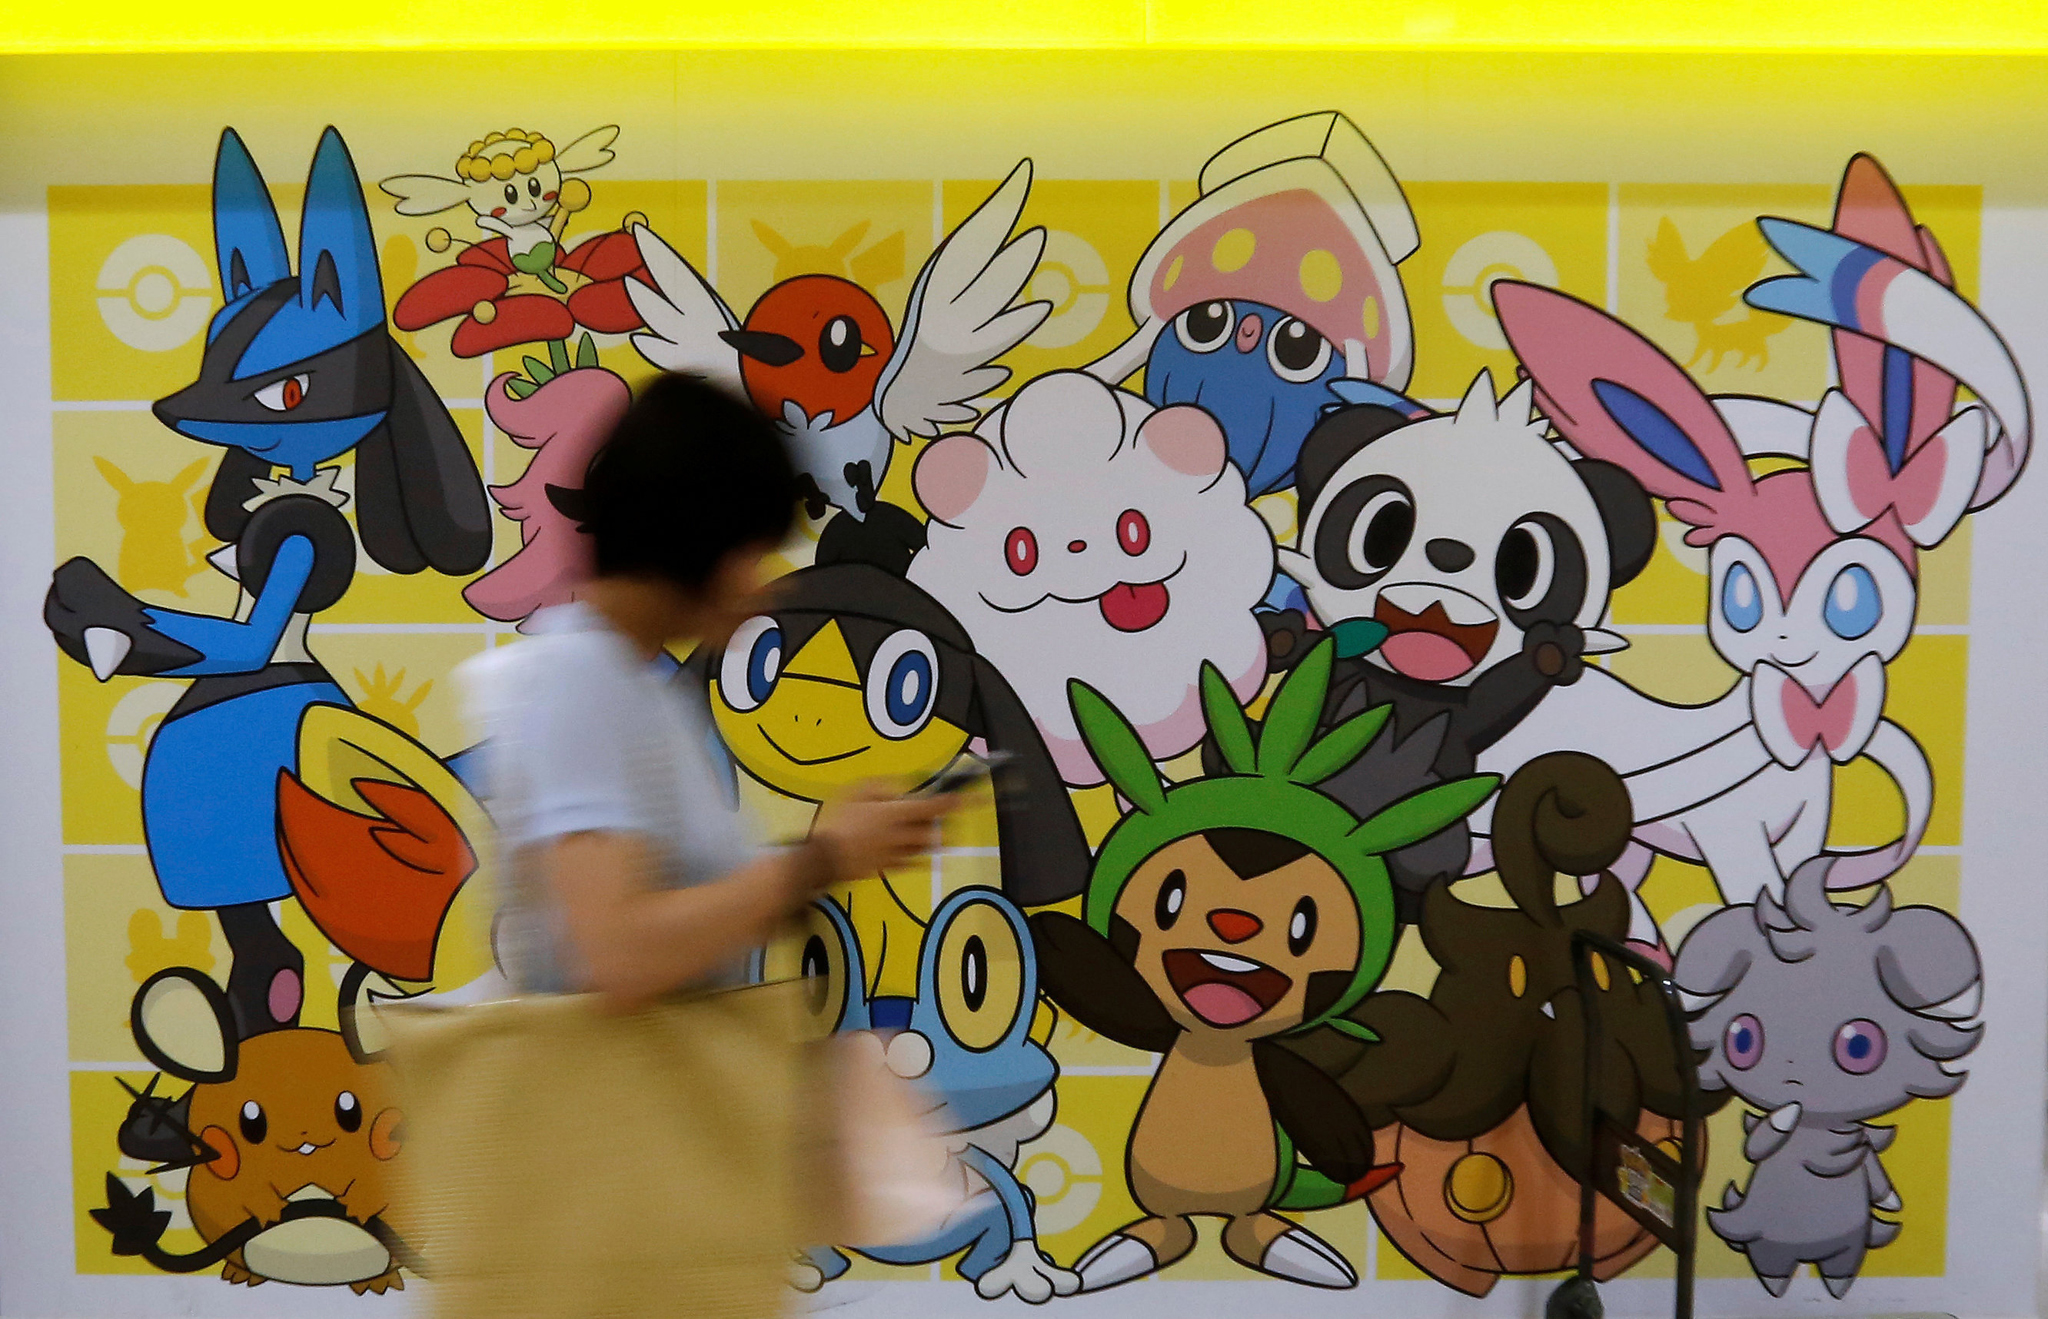 A woman using a mobile phone walks past a shop selling Pokemon goods in Tokyo, Japan